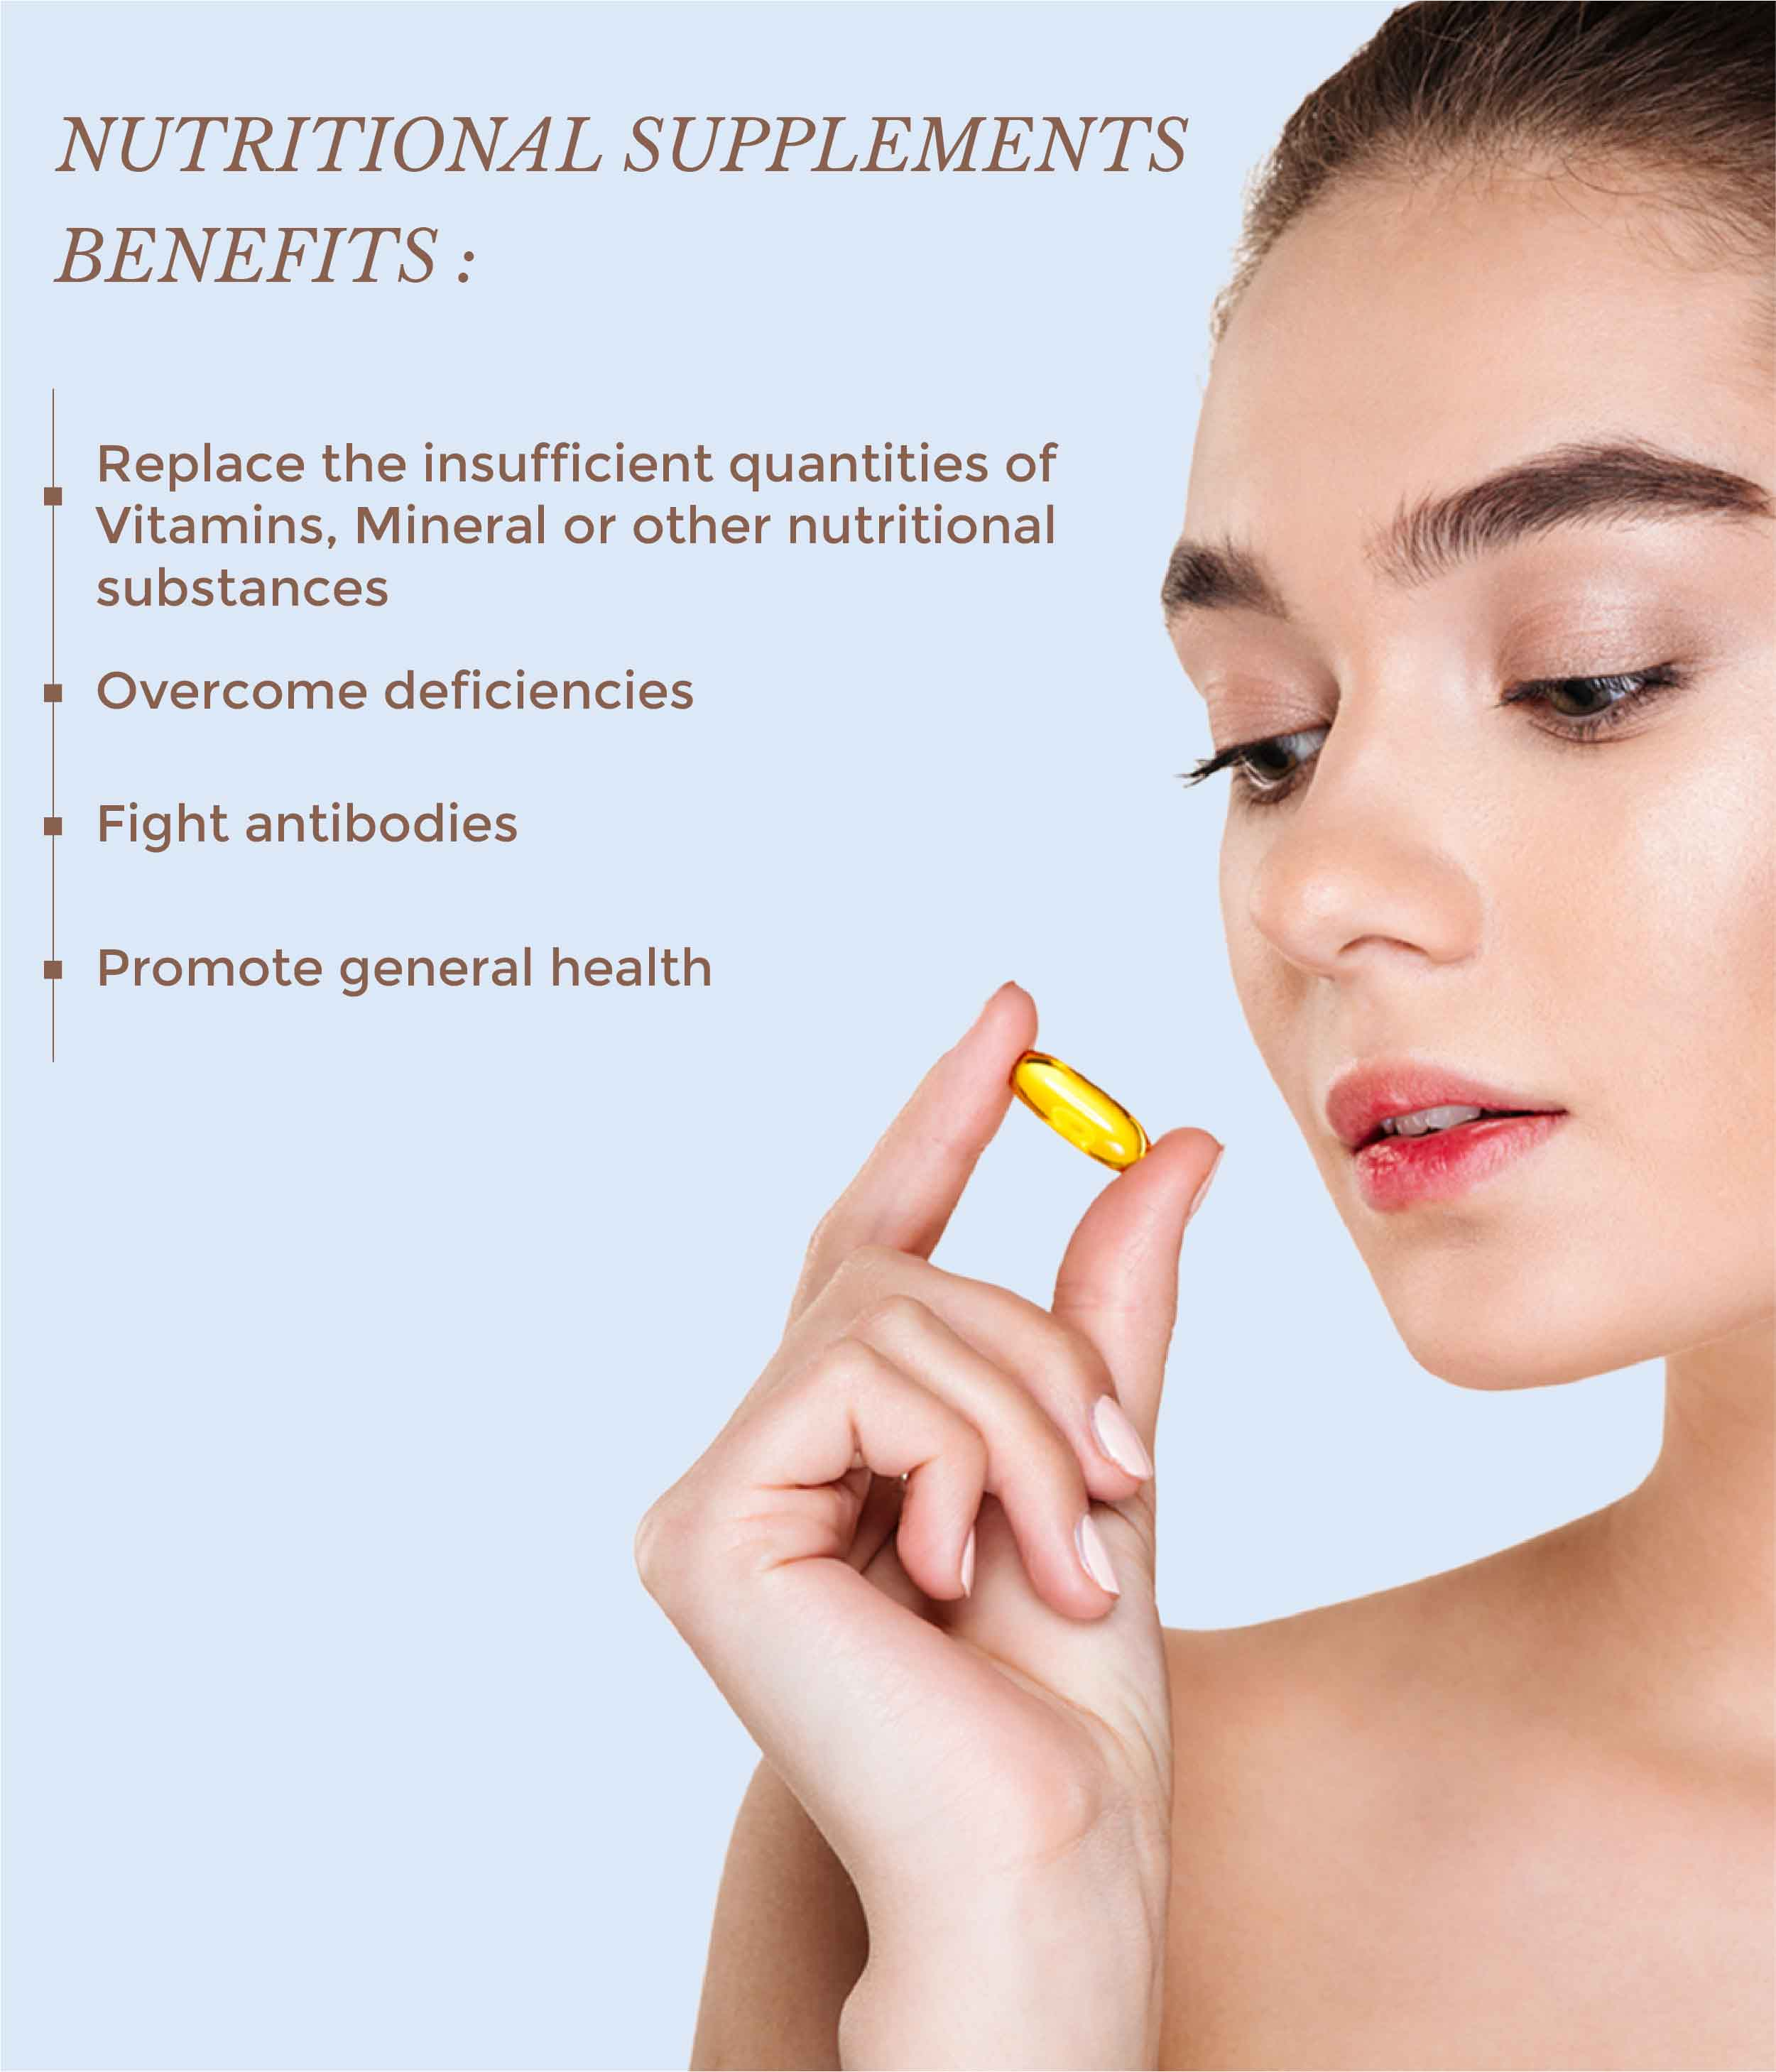 This is an an image of the benefits of nutritional supplements